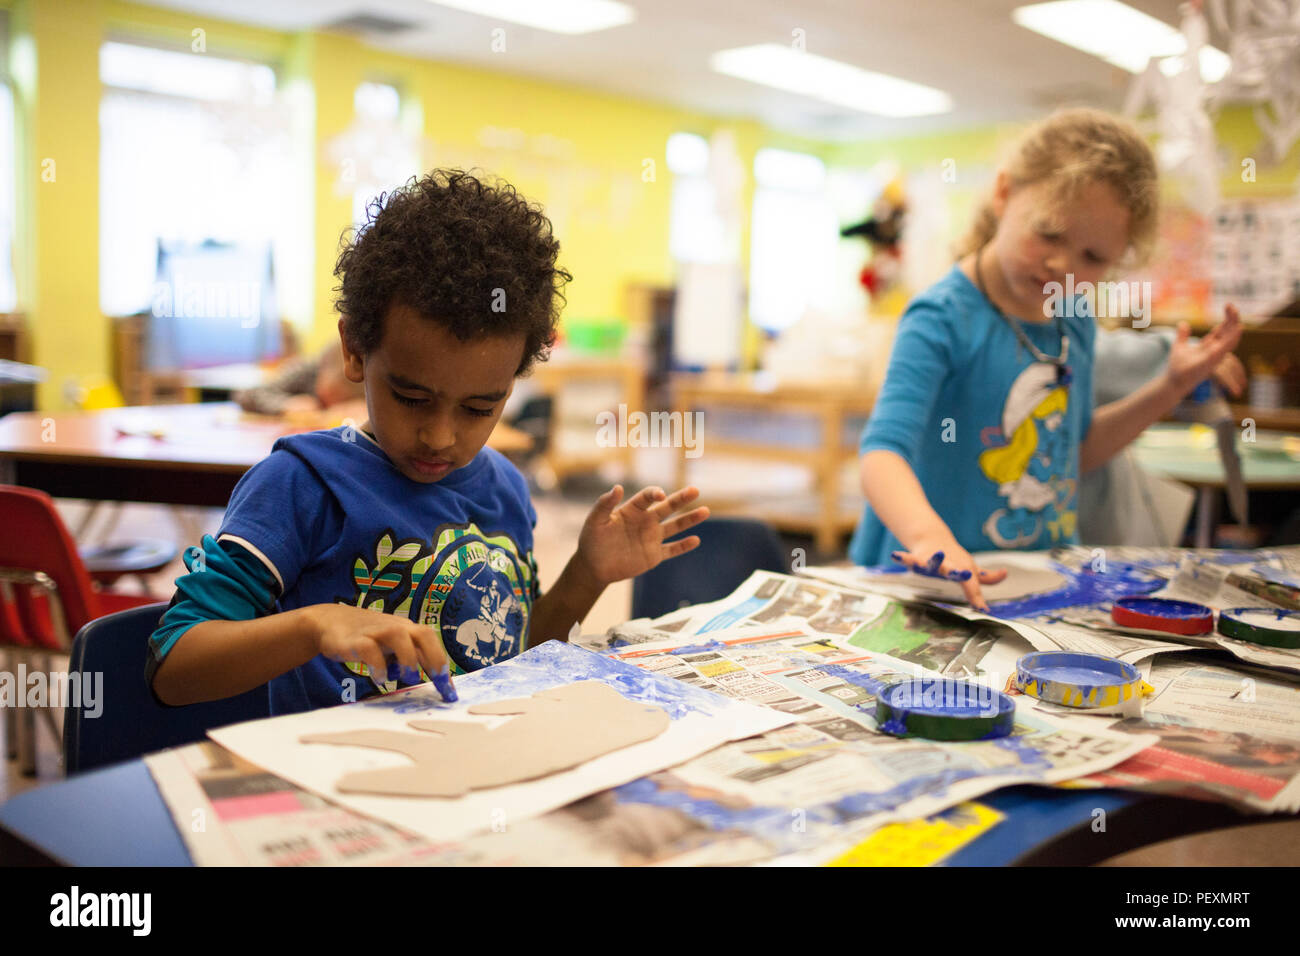 Schoolchildren finger painting in classroom - Stock Image